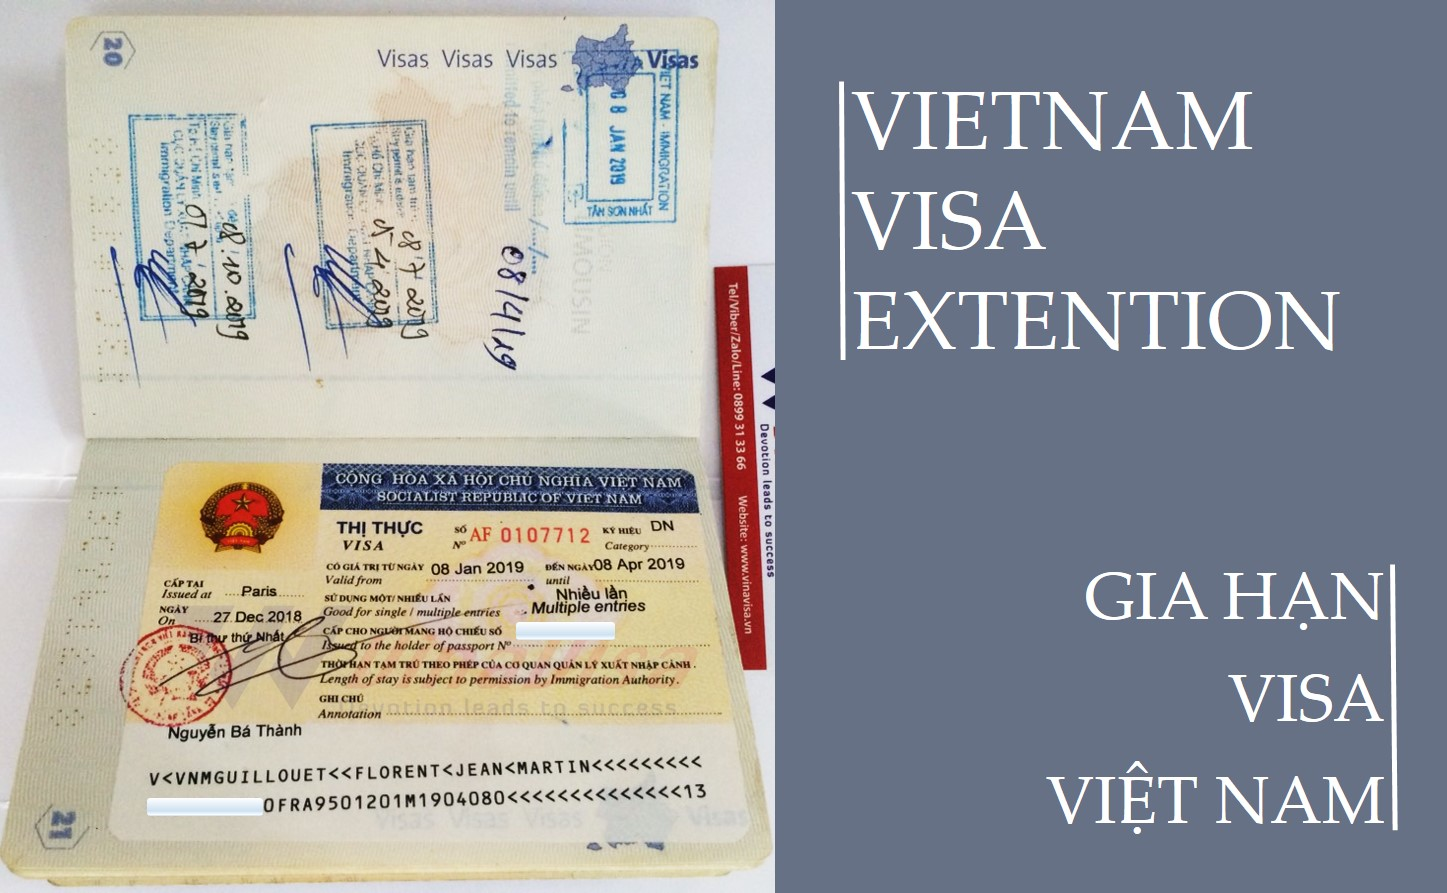 How to get Vietnam Visa Extension for my special reason